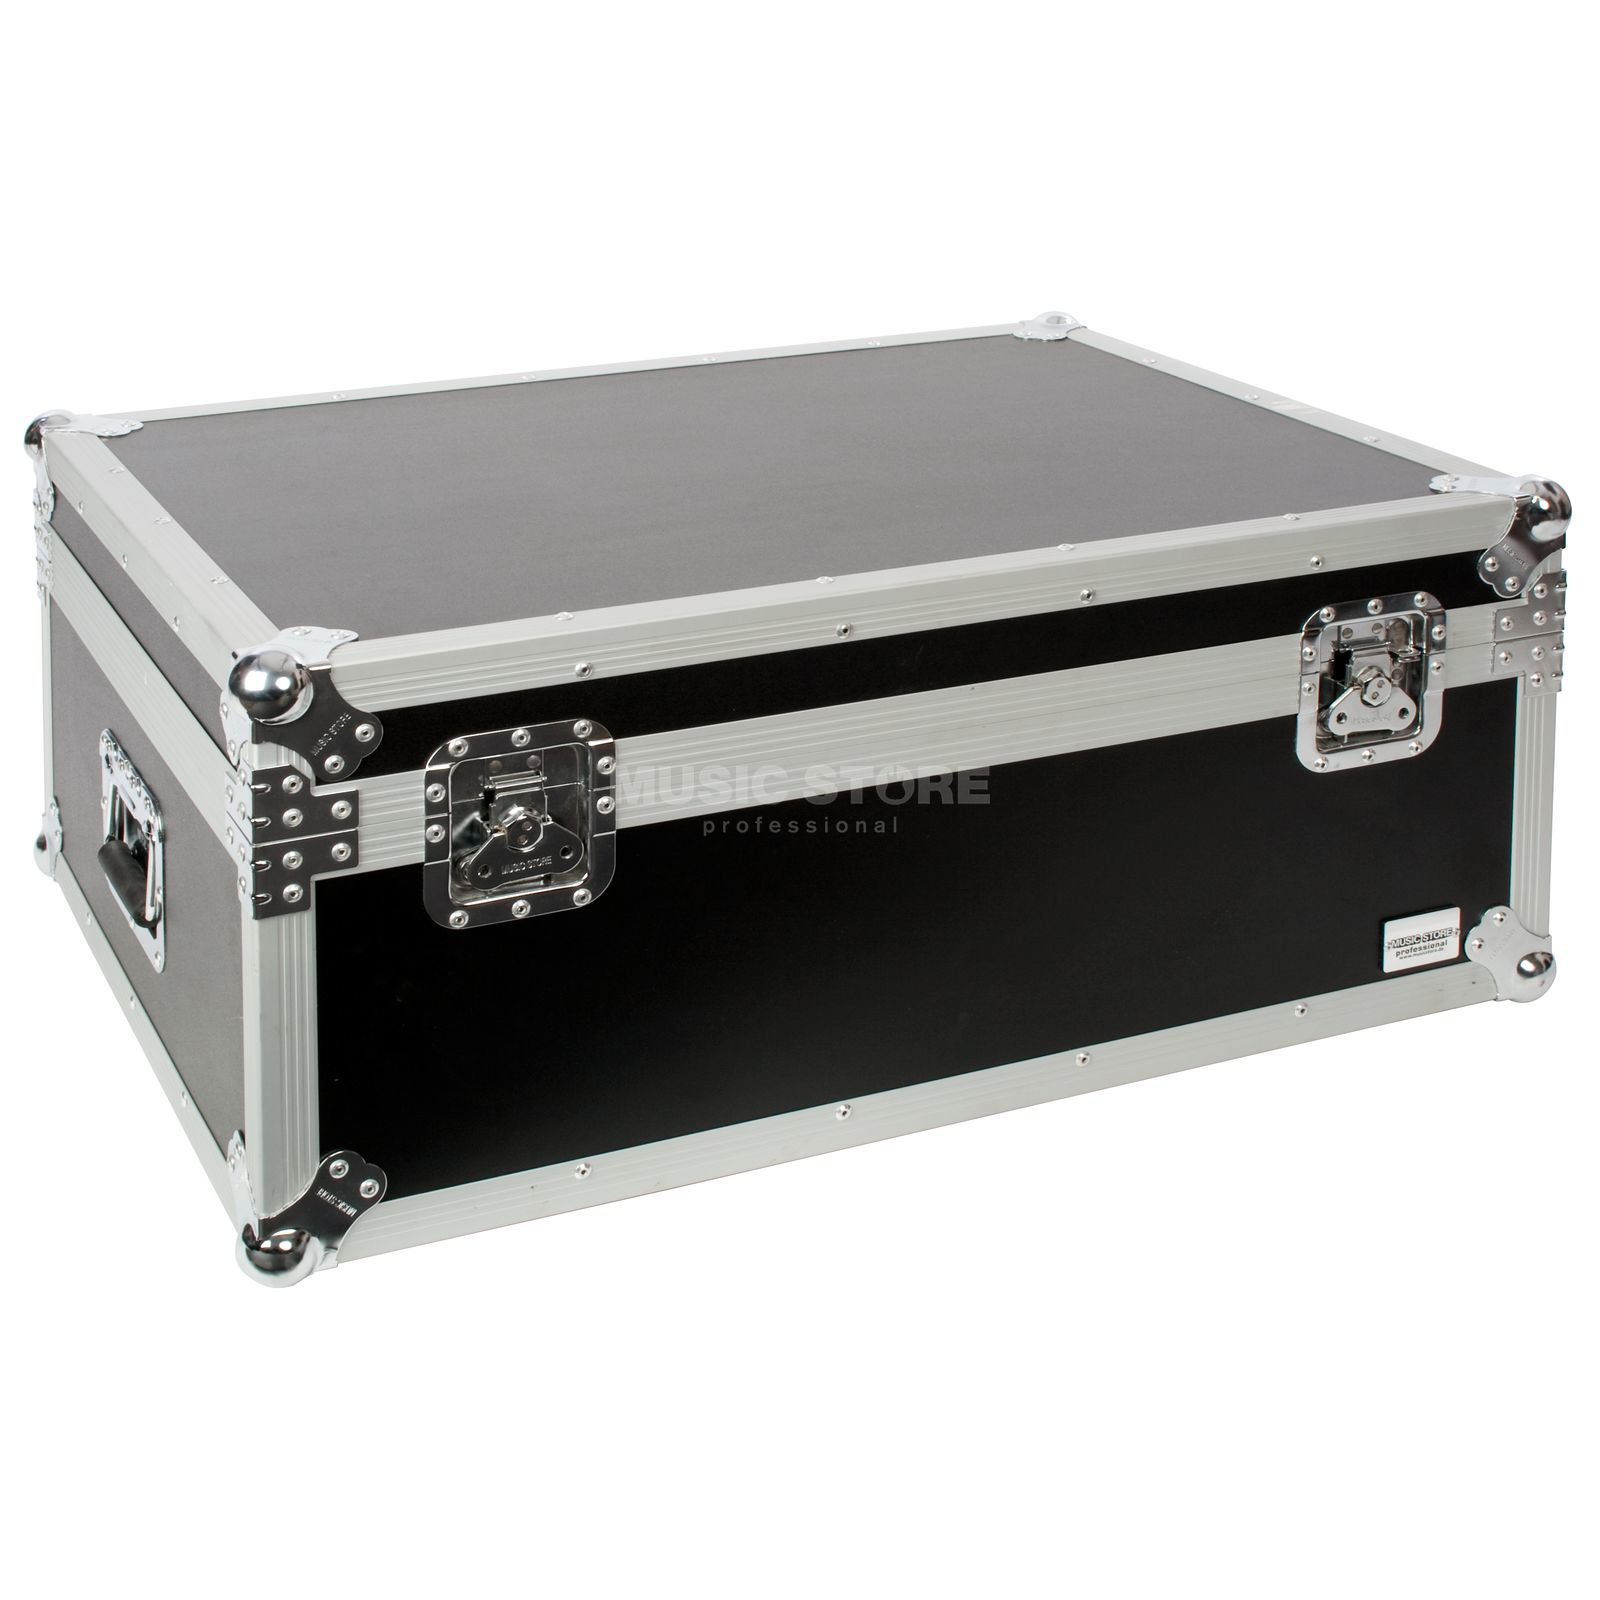 MUSIC STORE Universal Transport Case II 780 x 575 x 329 mm Produktbild